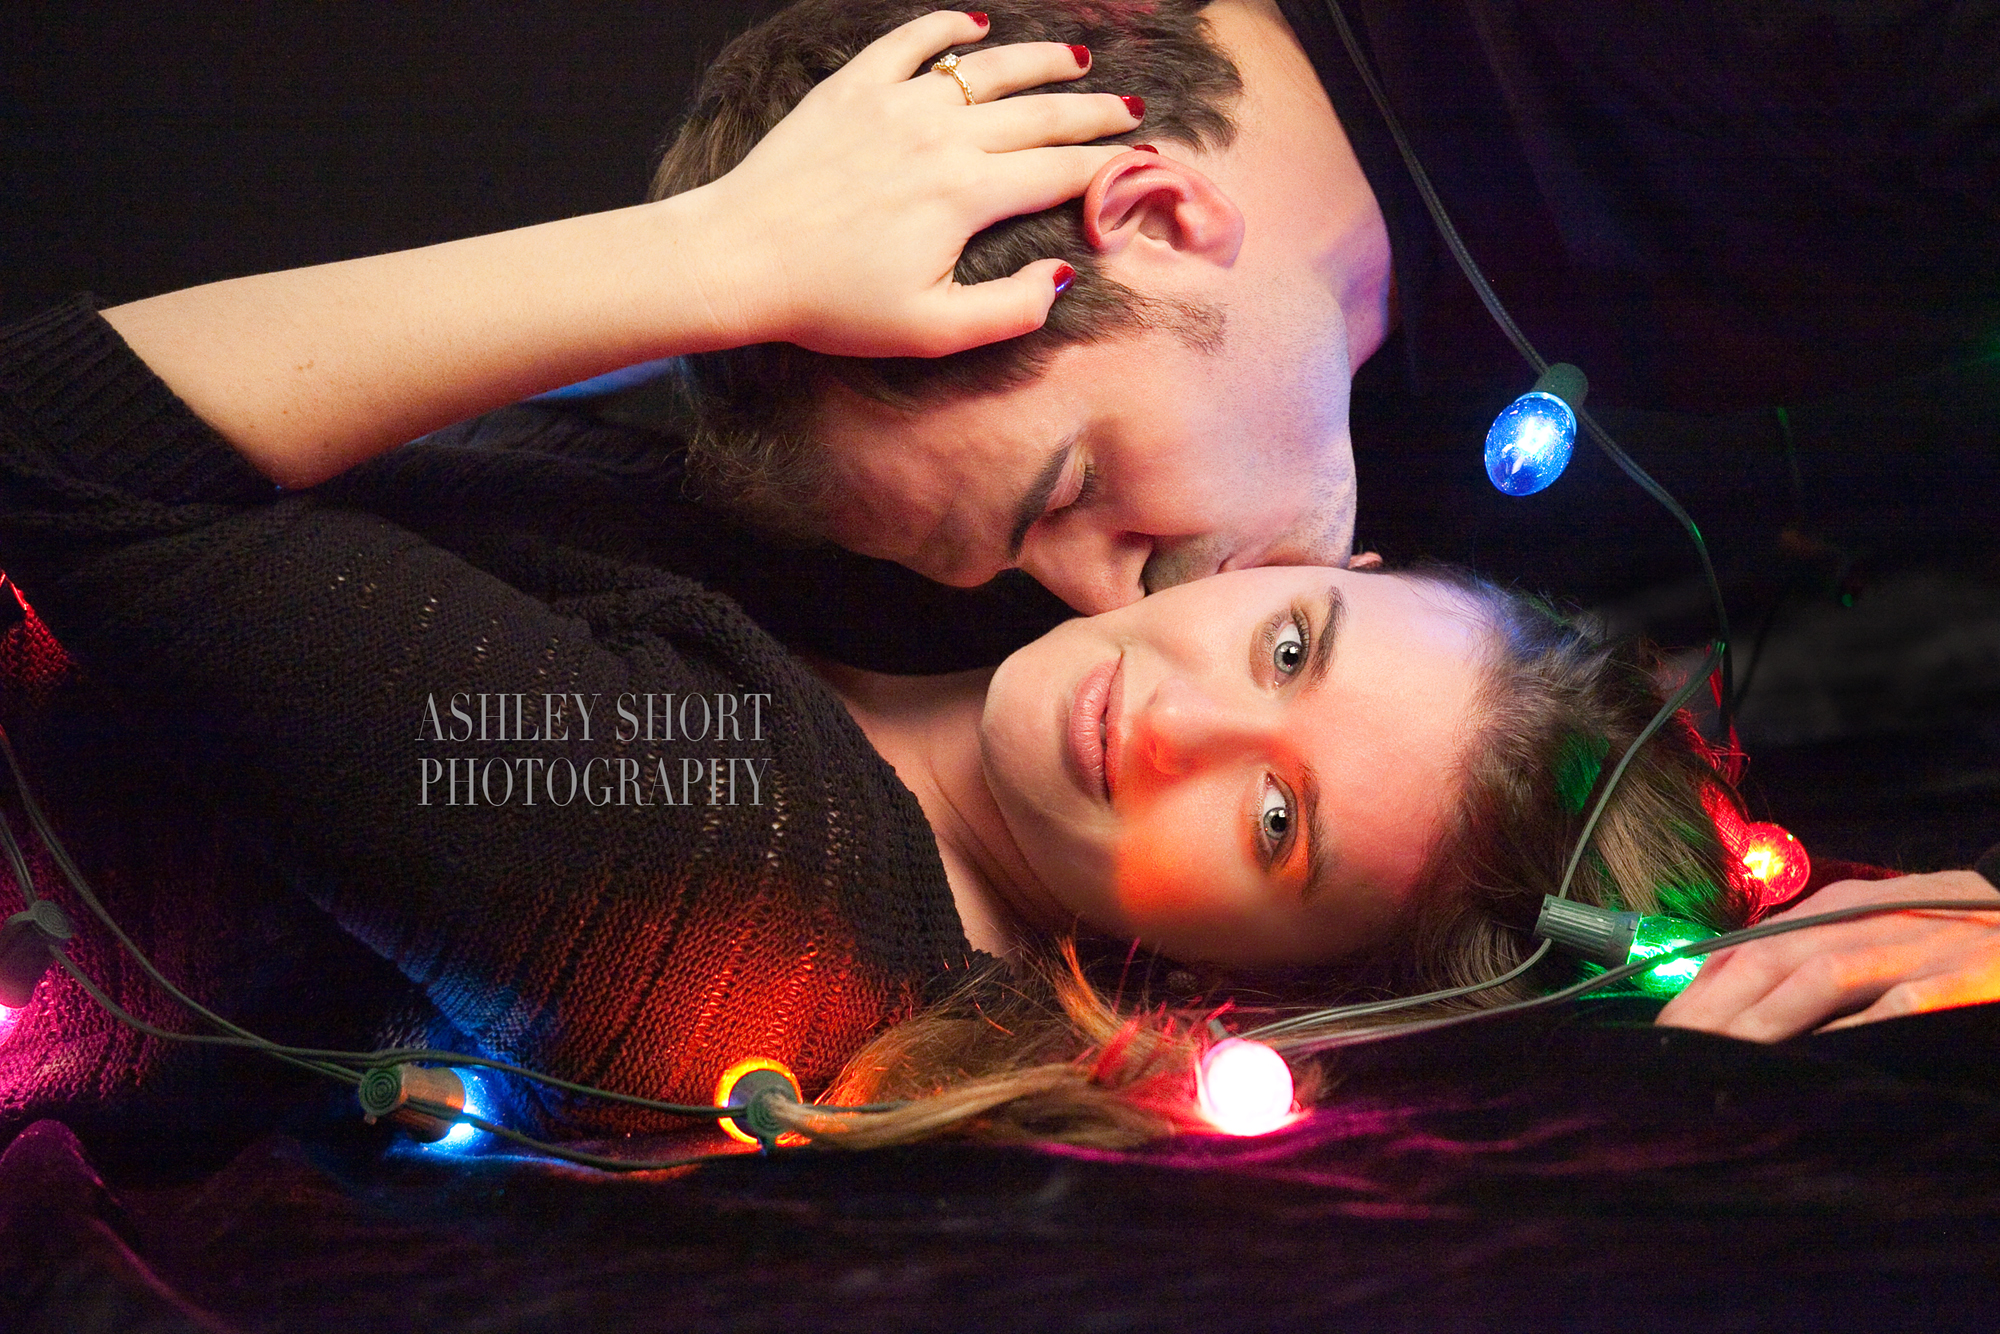 engagement portrait, couples portrait, fun engagement pictures, vintage christmas lights, ashley short photography, toledo ohio photographer, archbold ohio photographer, couple in love, fun engagement portrait, romantic engagement picture, woman being kissed